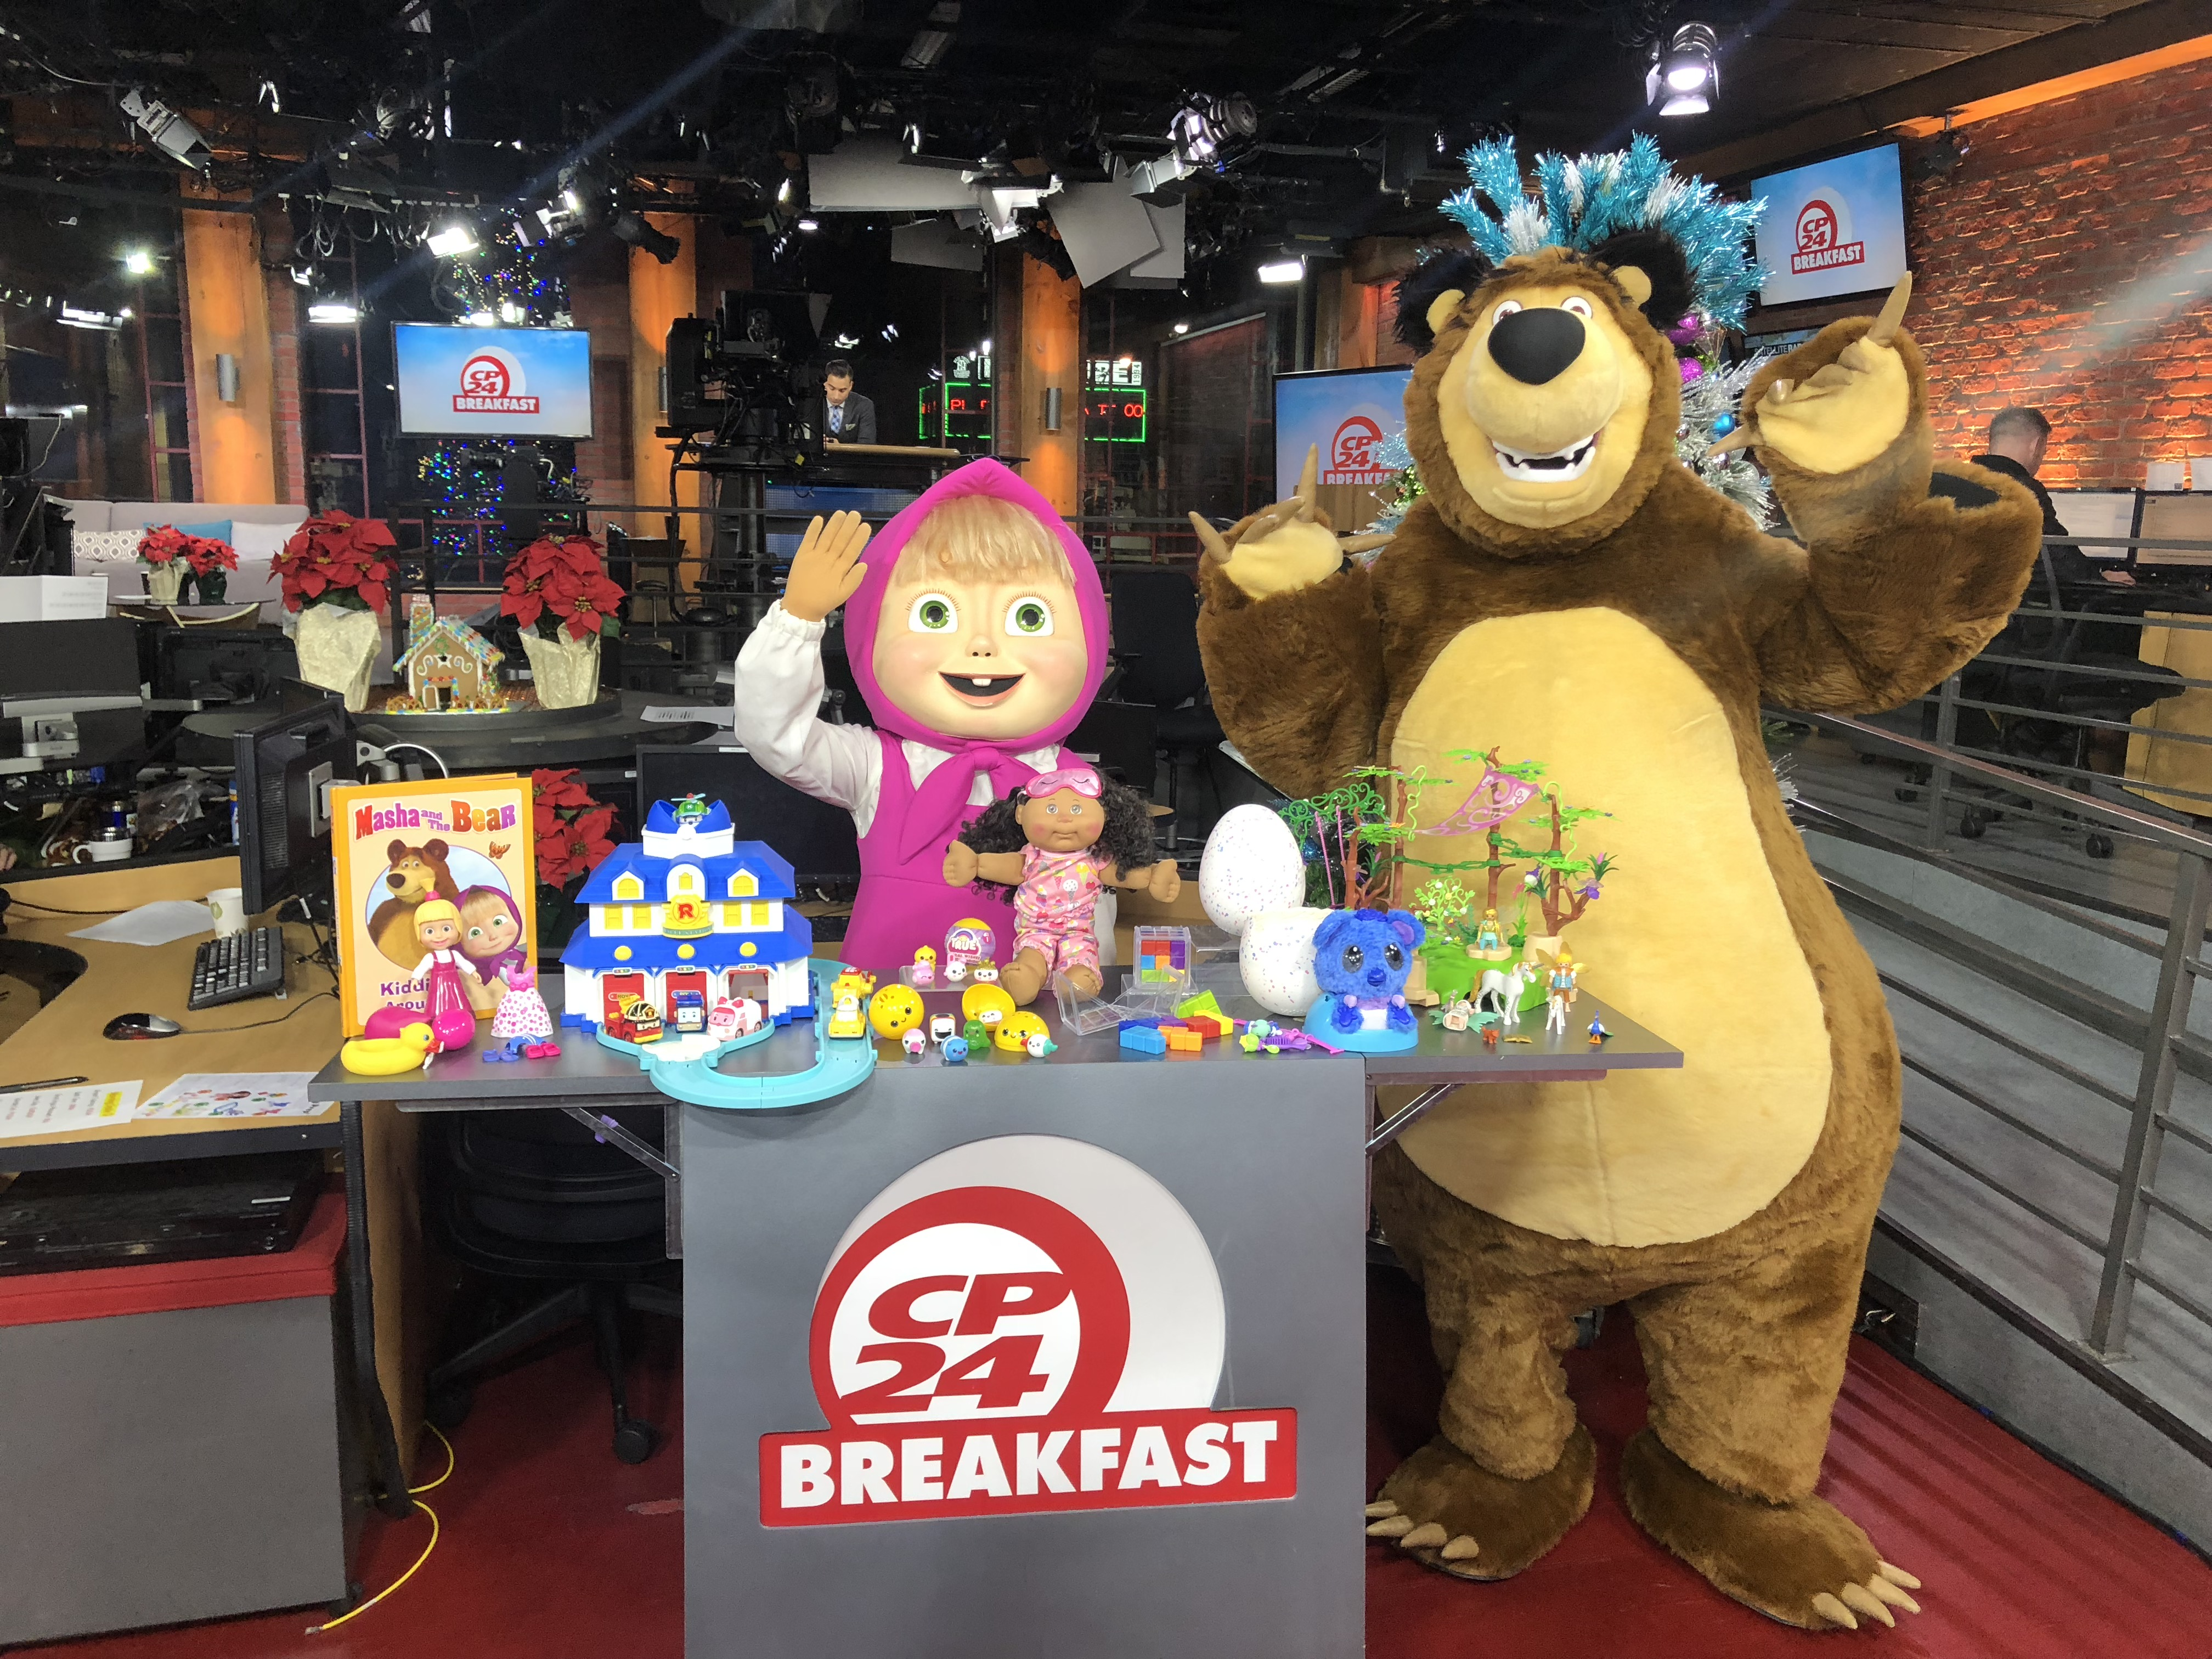 CP24 15 - Holiday Food 2018